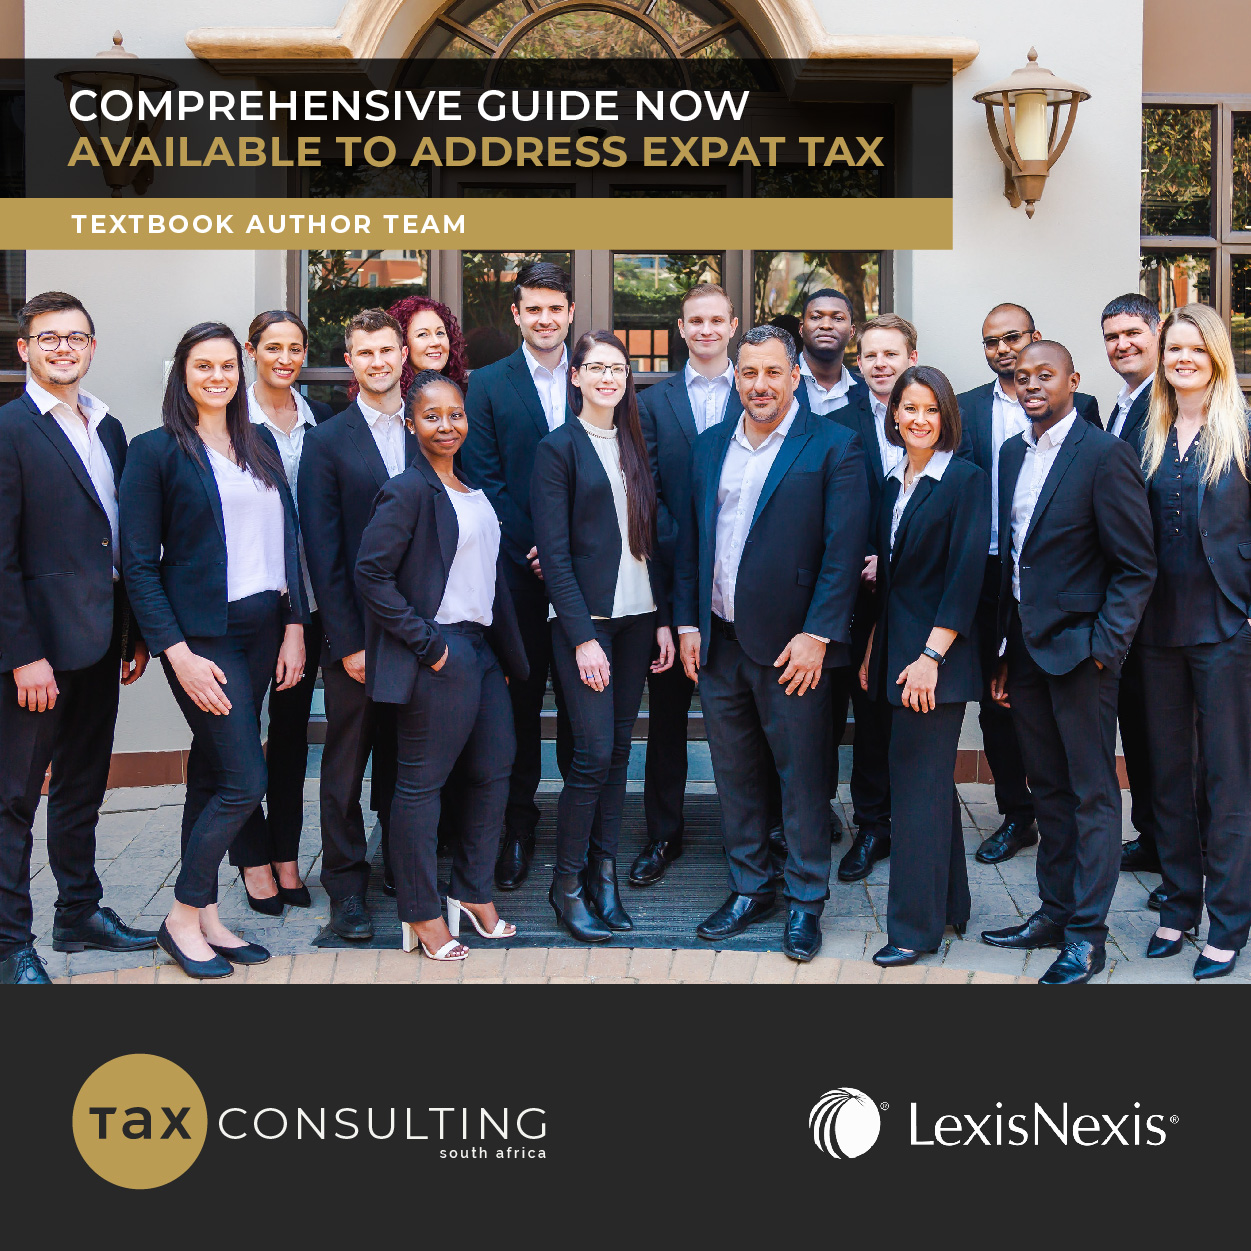 Comprehensive Guide Now Available To Address Expat Tax-LexisNexis